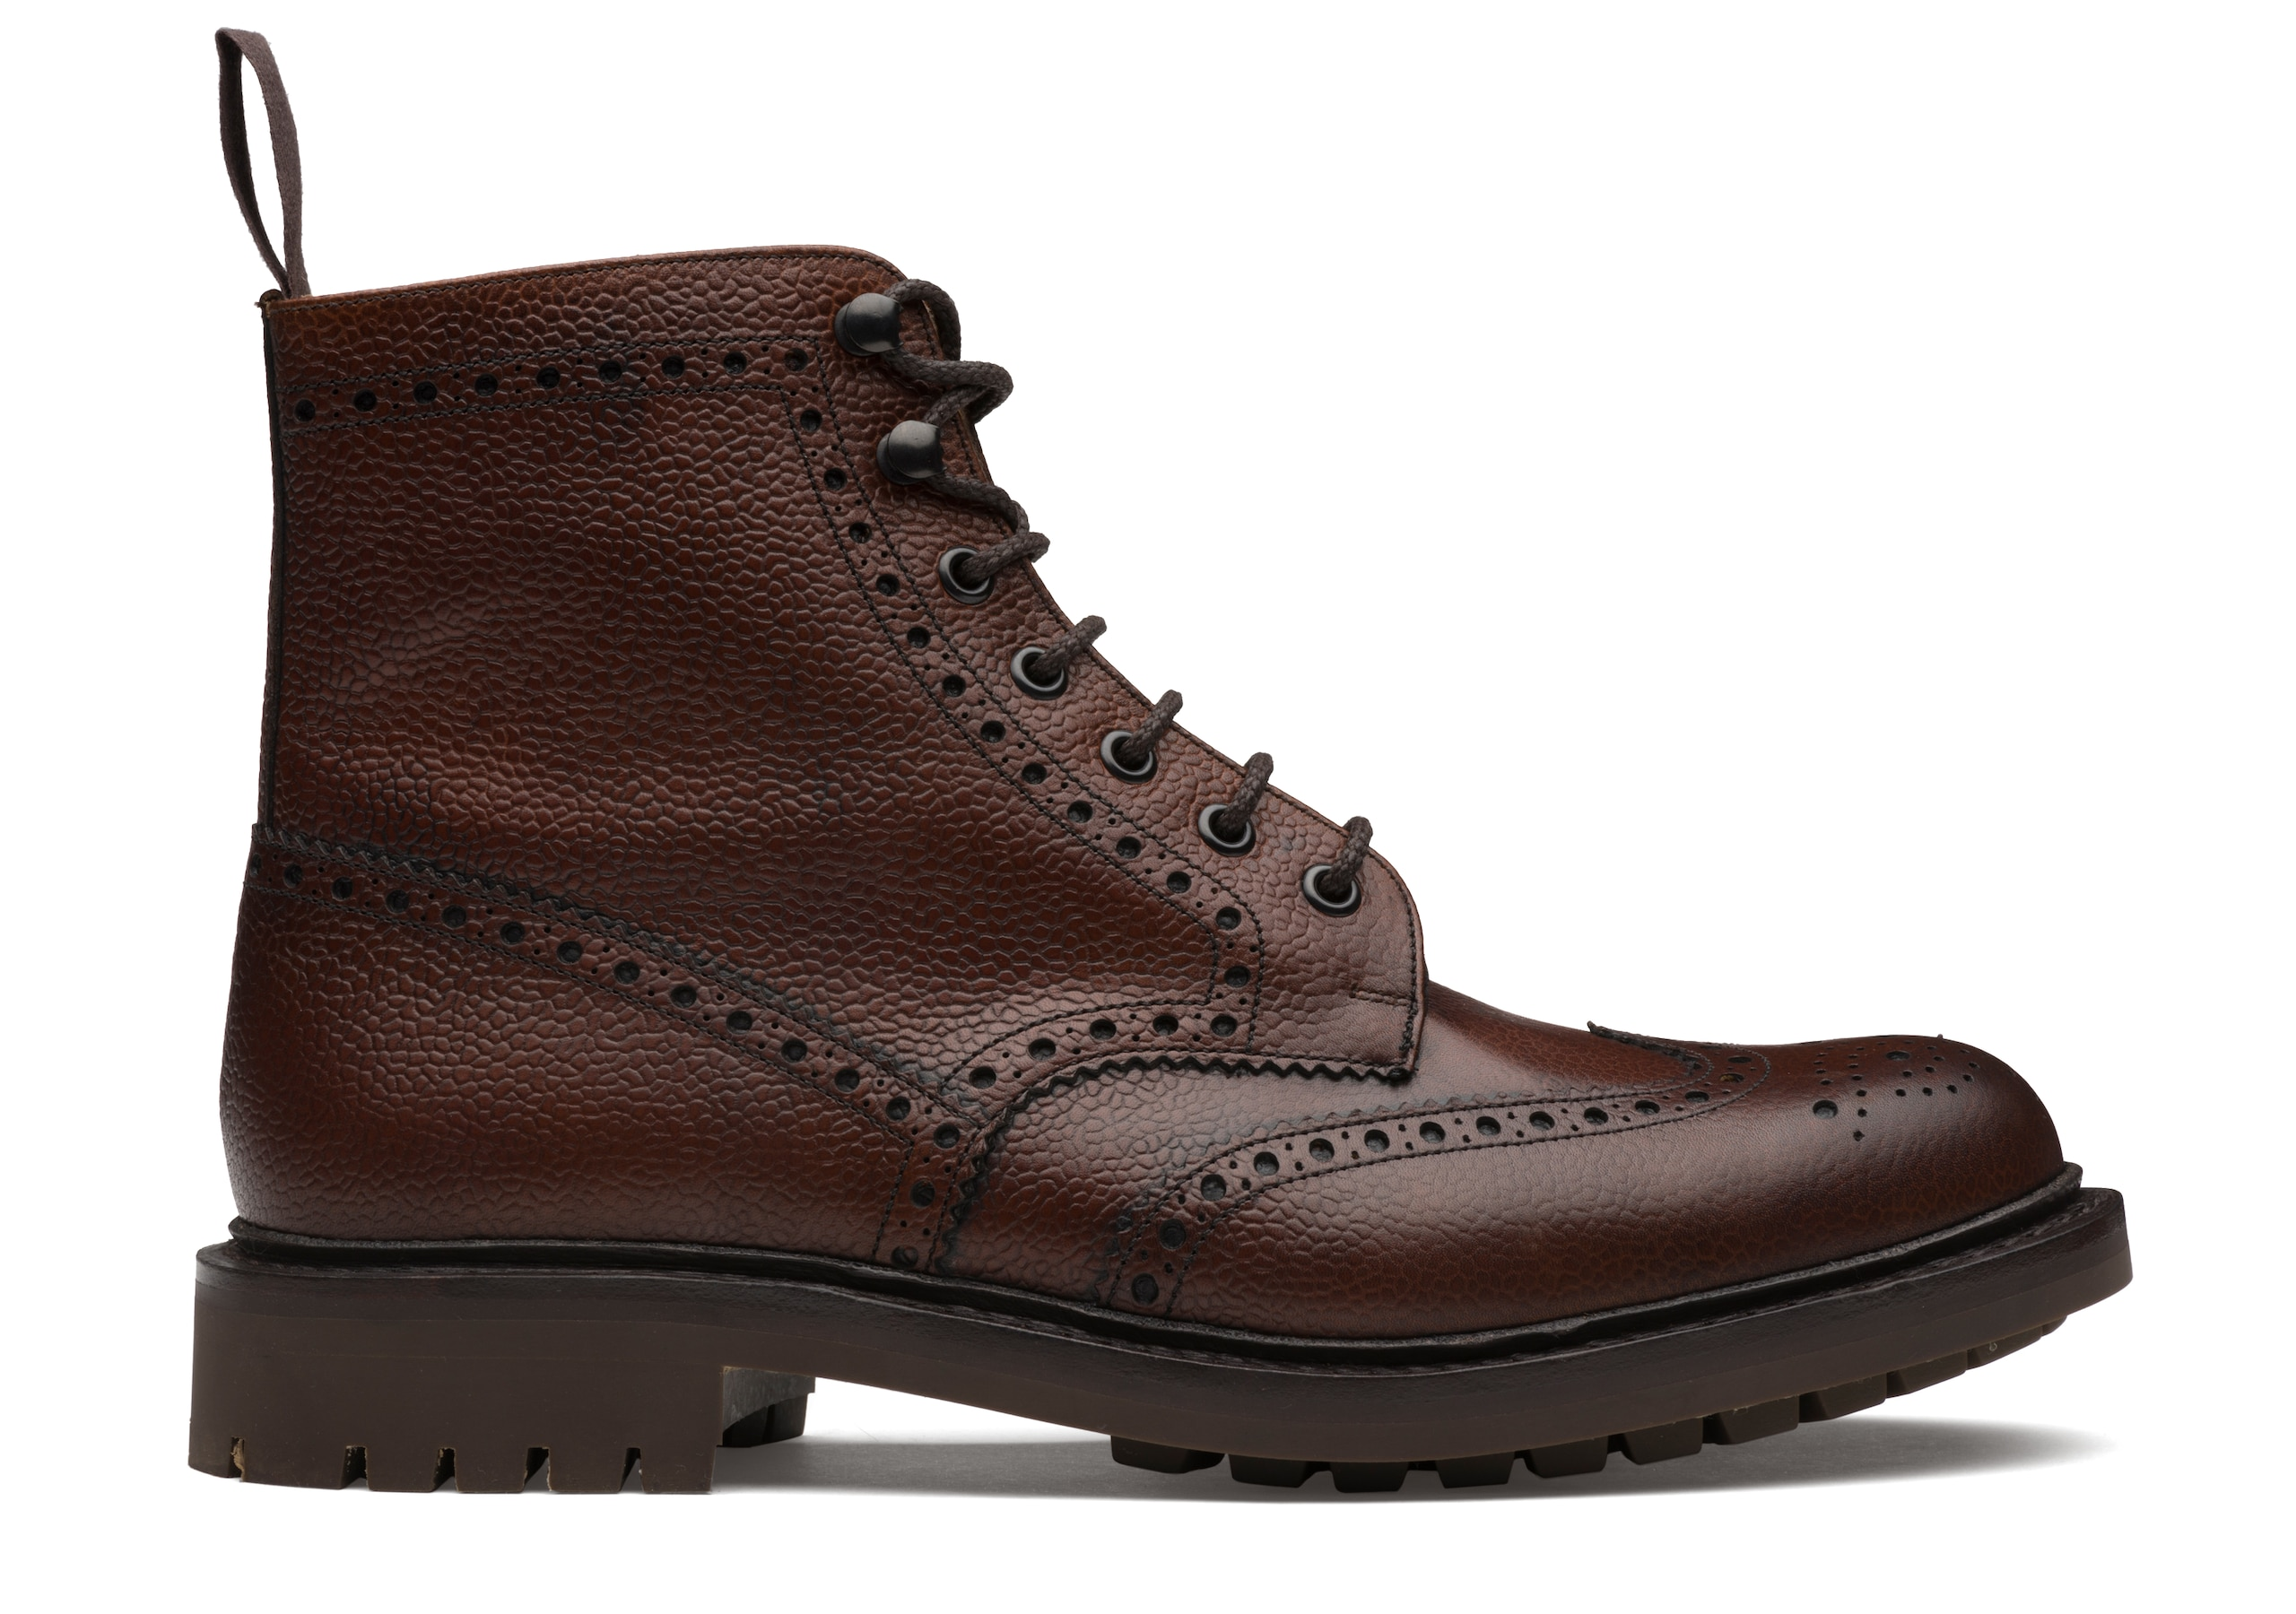 Mac farlane 2 Church's Highland Grain Lace-Up Boot Brogue Brown